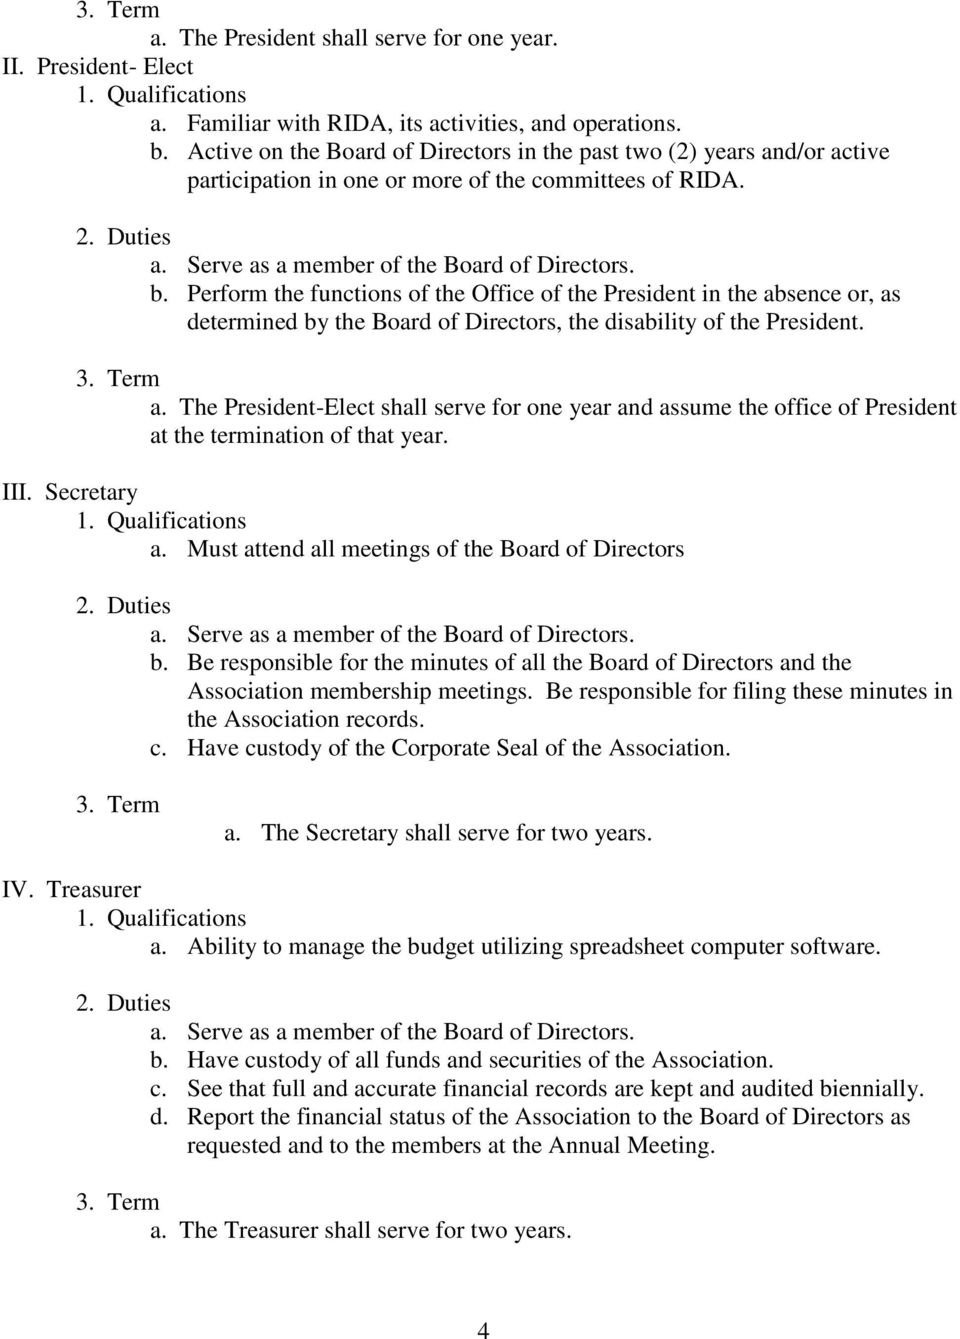 Perform the functions of the Office of the President in the absence or, as determined by the Board of Directors, the disability of the President. a. The President-Elect shall serve for one year and assume the office of President at the termination of that year.